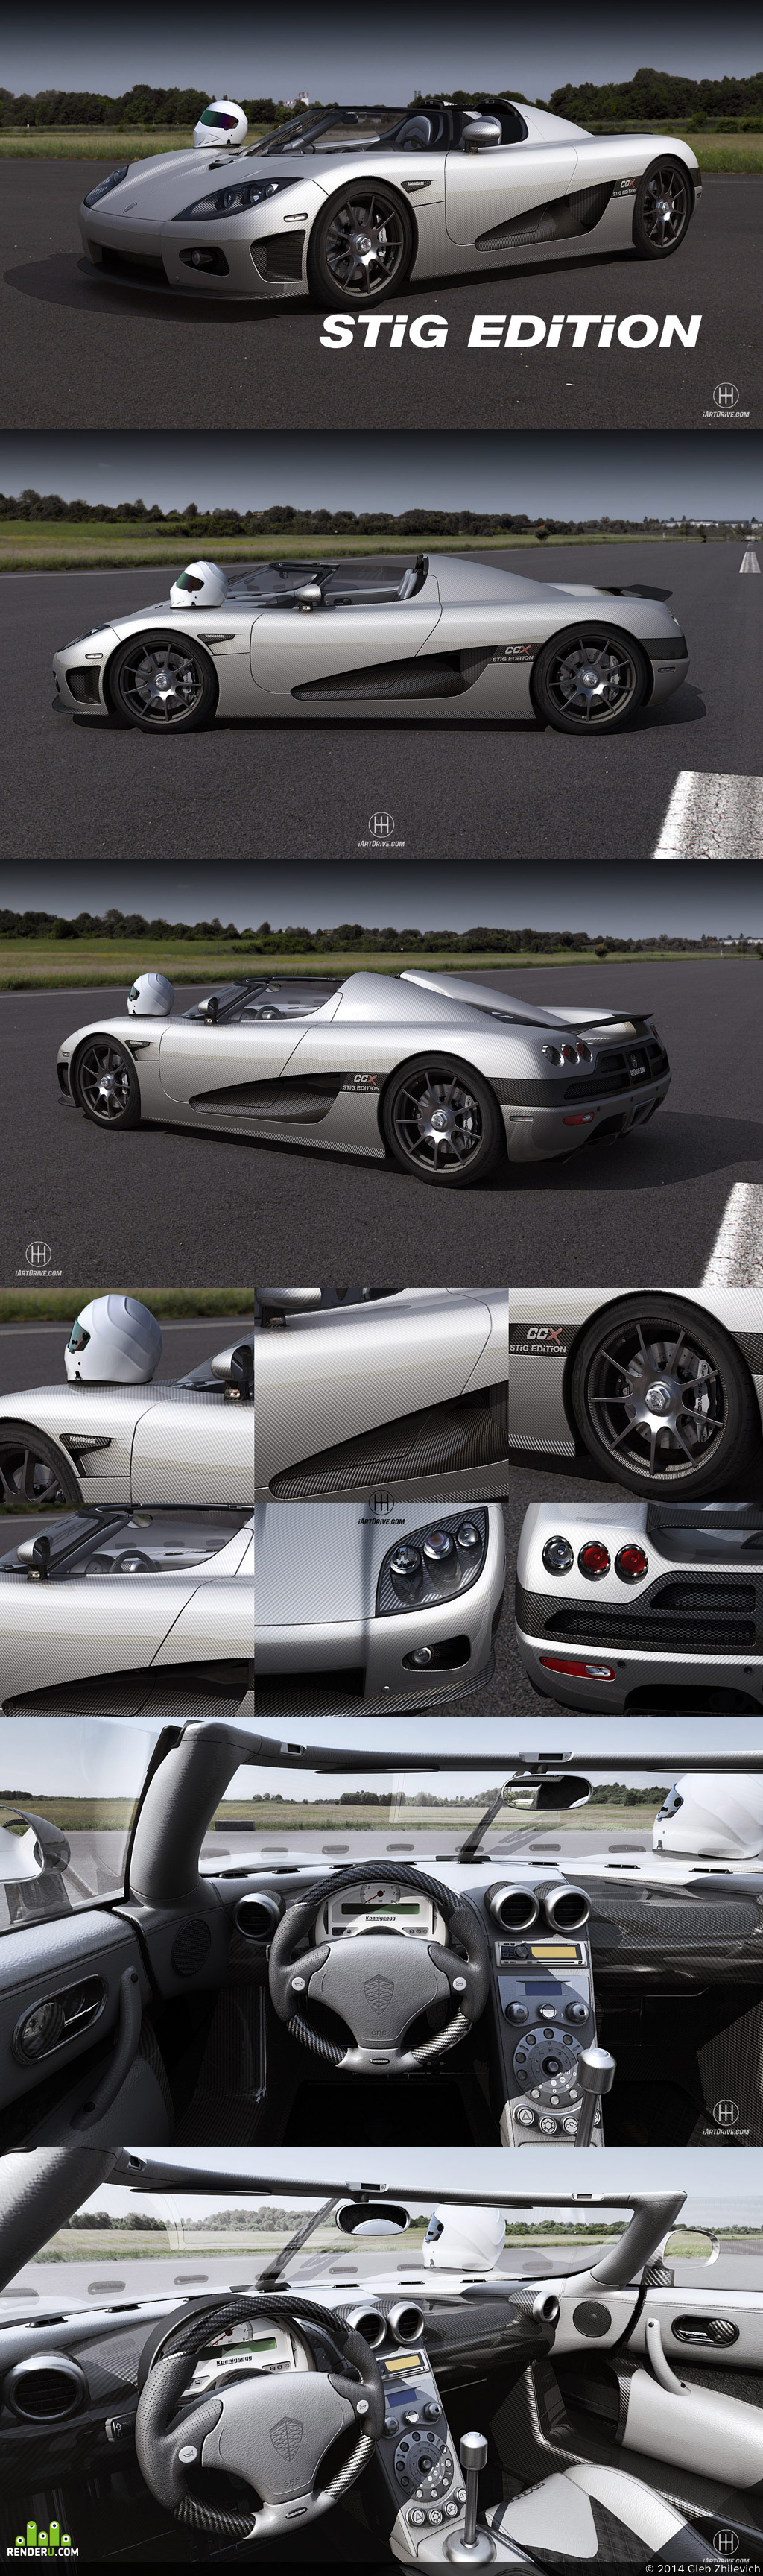 preview Koenigsegg CCX Stig Edition in-game 3D model Next Gen